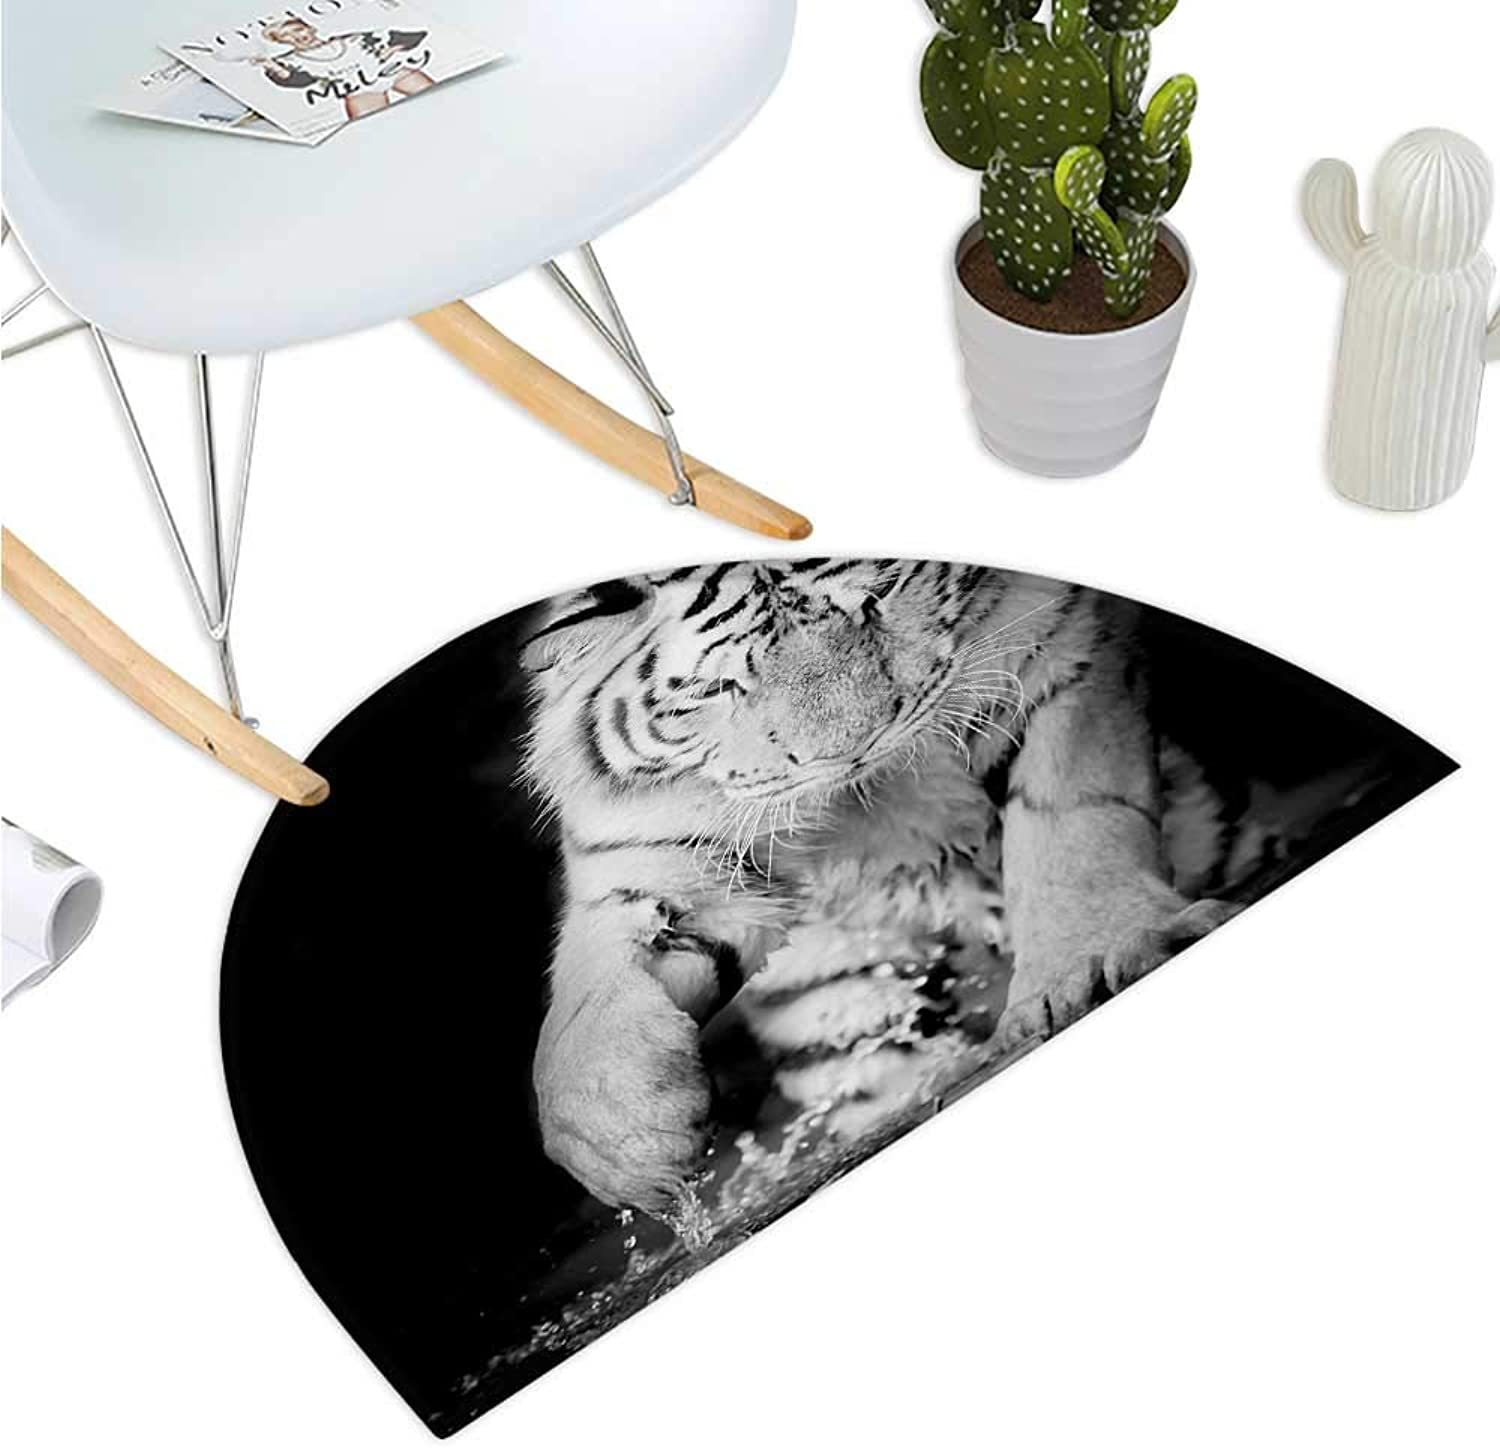 Tiger Semicircle Doormat Black and White Image of Large Cat Playing with Water Cool Animals Fun Hunter Entry Door Mat H 35.4  xD 53.1  Black Pale Grey